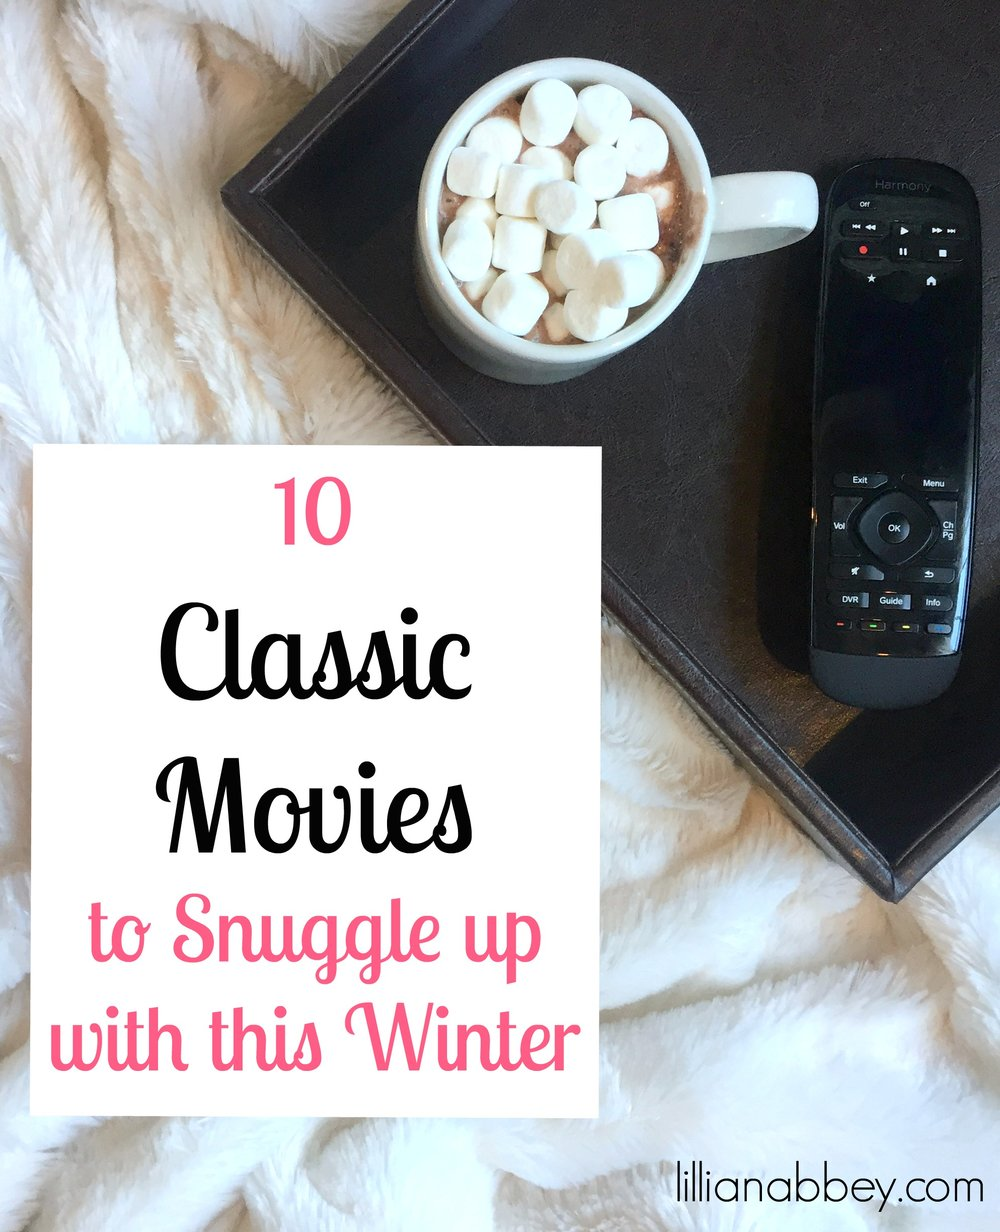 10 Classic Movies to Snuggle up with this Winter